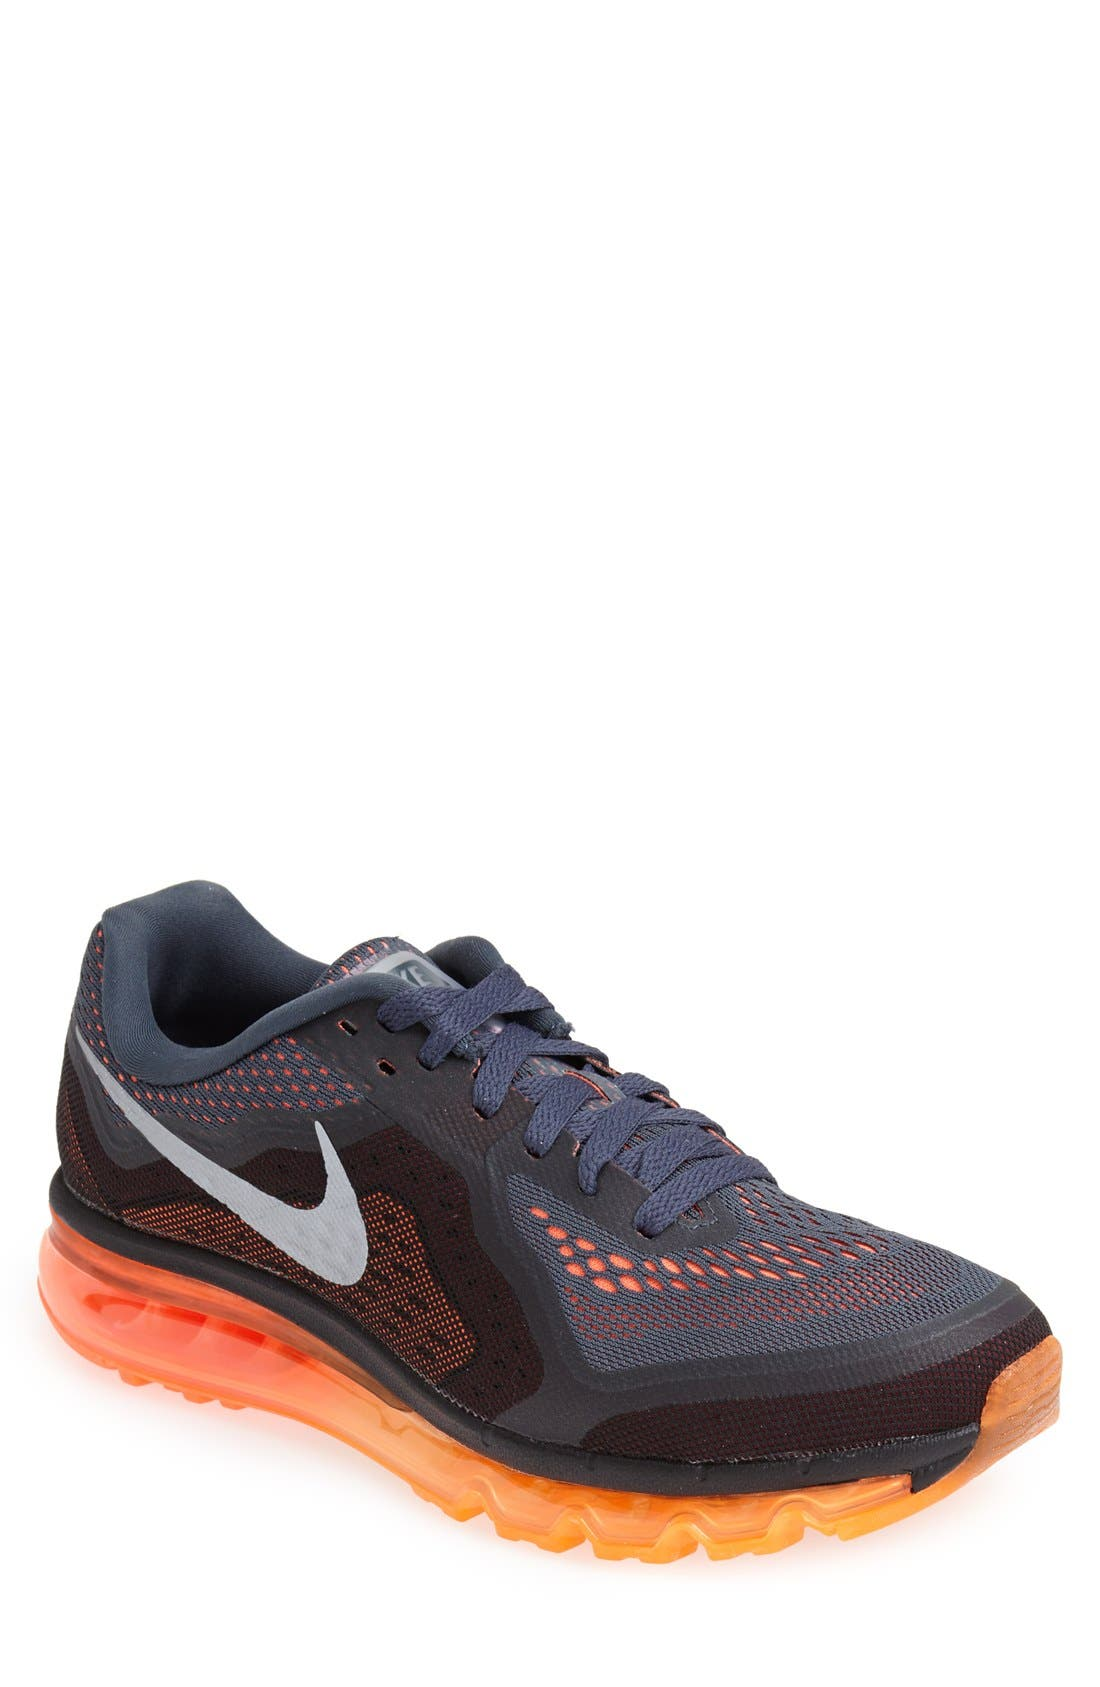 Alternate Image 1 Selected - Nike 'Air Max 2014' Running Shoe (Men)